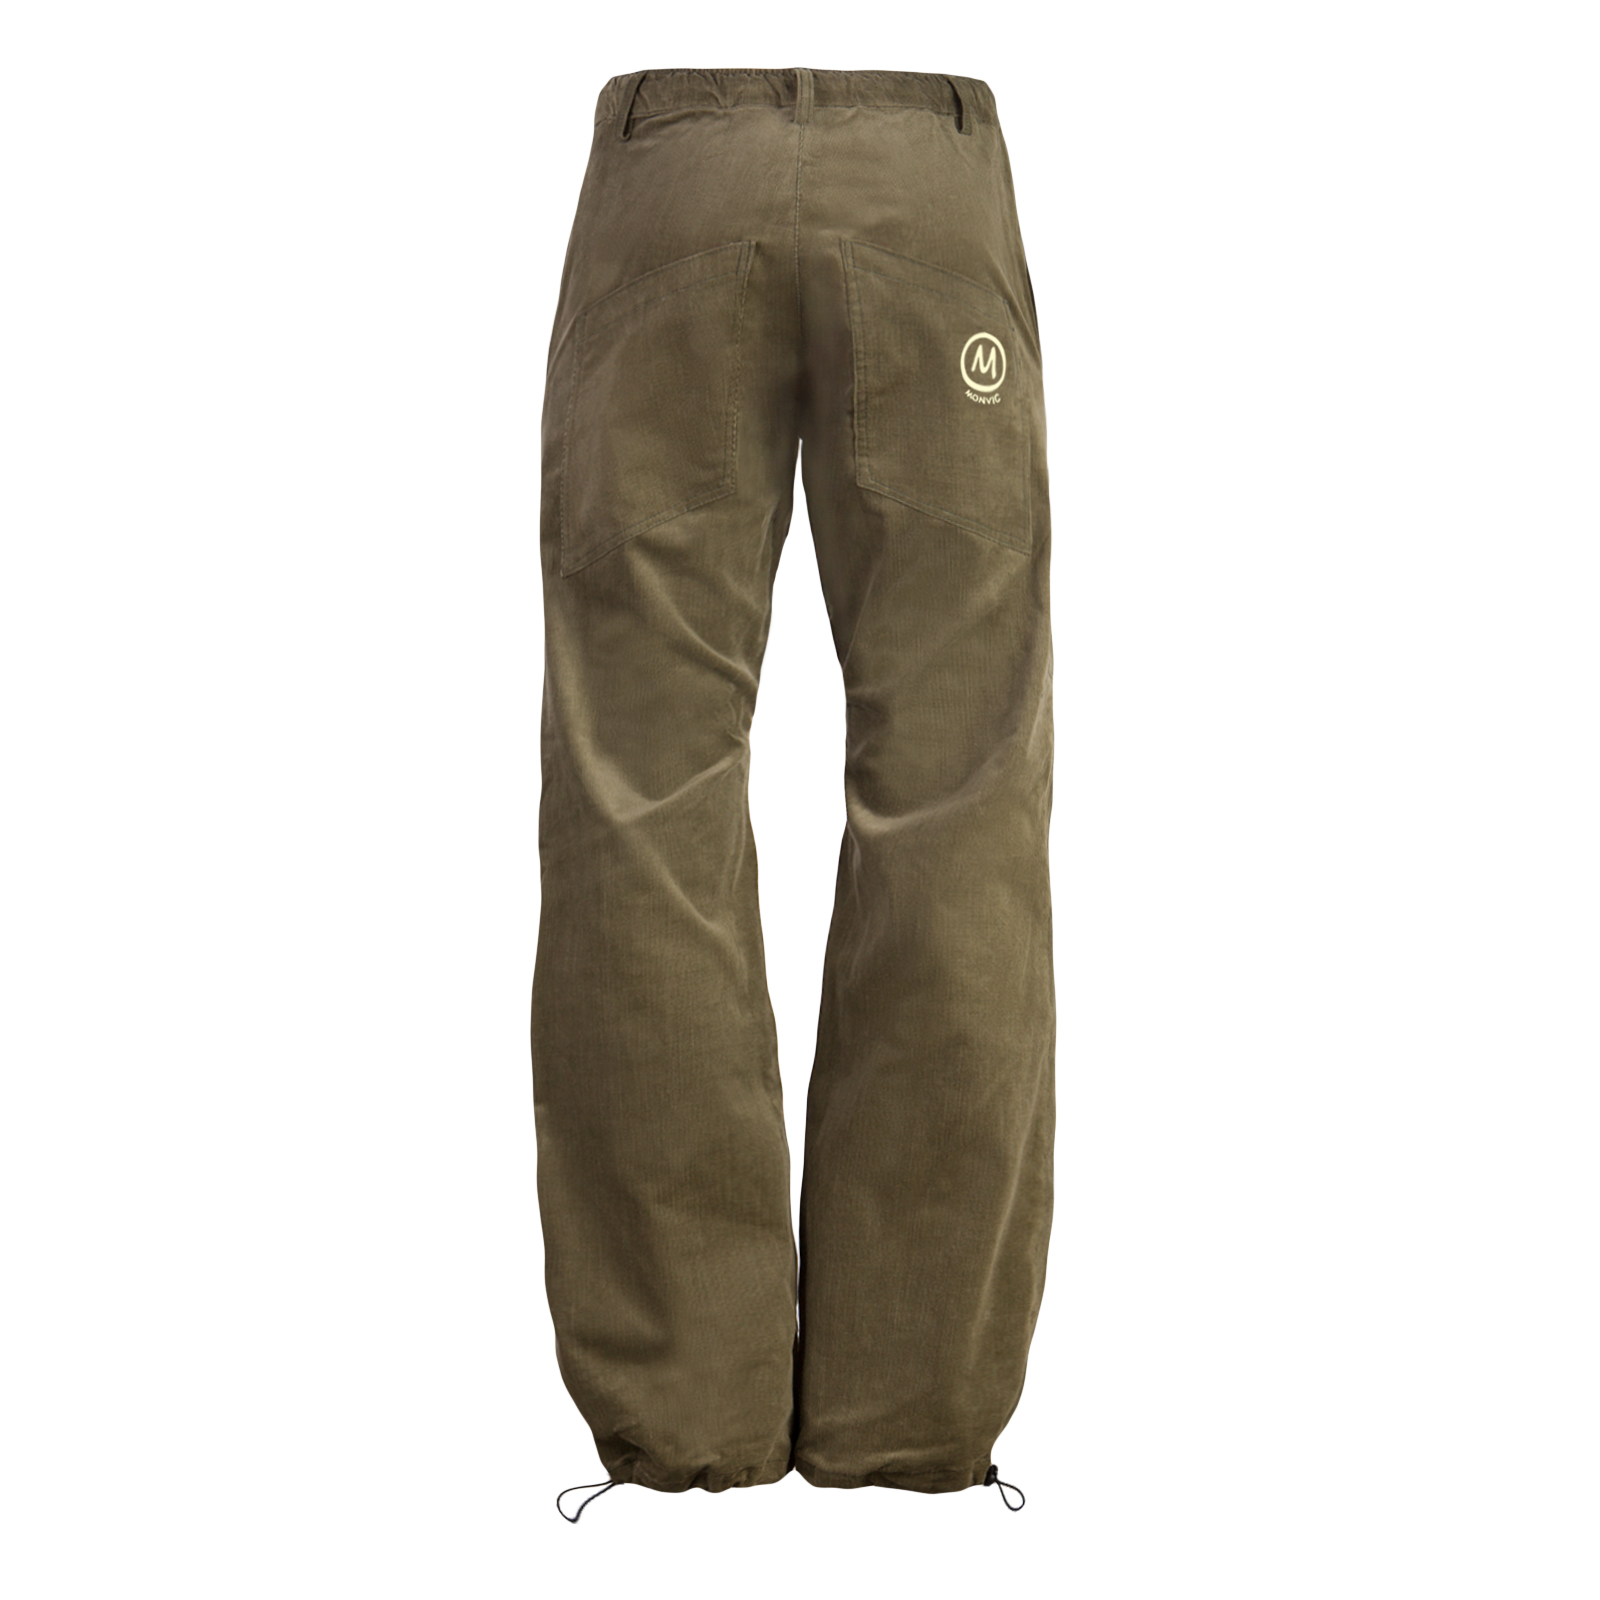 Fine ribbed corduroy trousers for men brown green army GRILLO Monvic for climbing